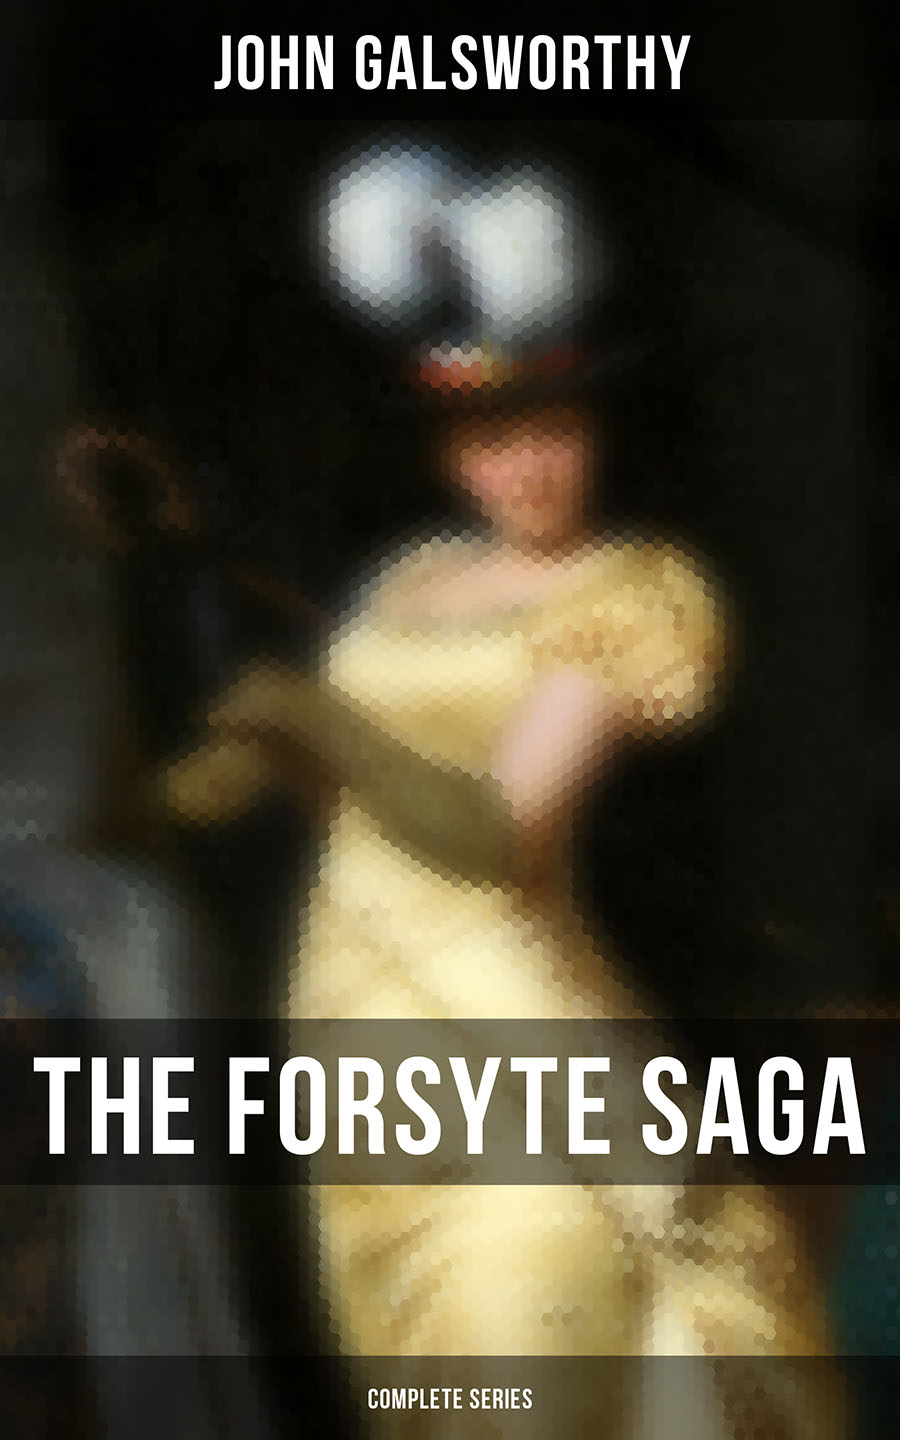 John Galsworthy THE COMPLETE FORSYTE SAGA SERIES: The Forsyte Saga, A Modern Comedy, End of the Chapter & On Forsyte 'Change (A Prequel) george churchill kenney the saga of pappy gunn